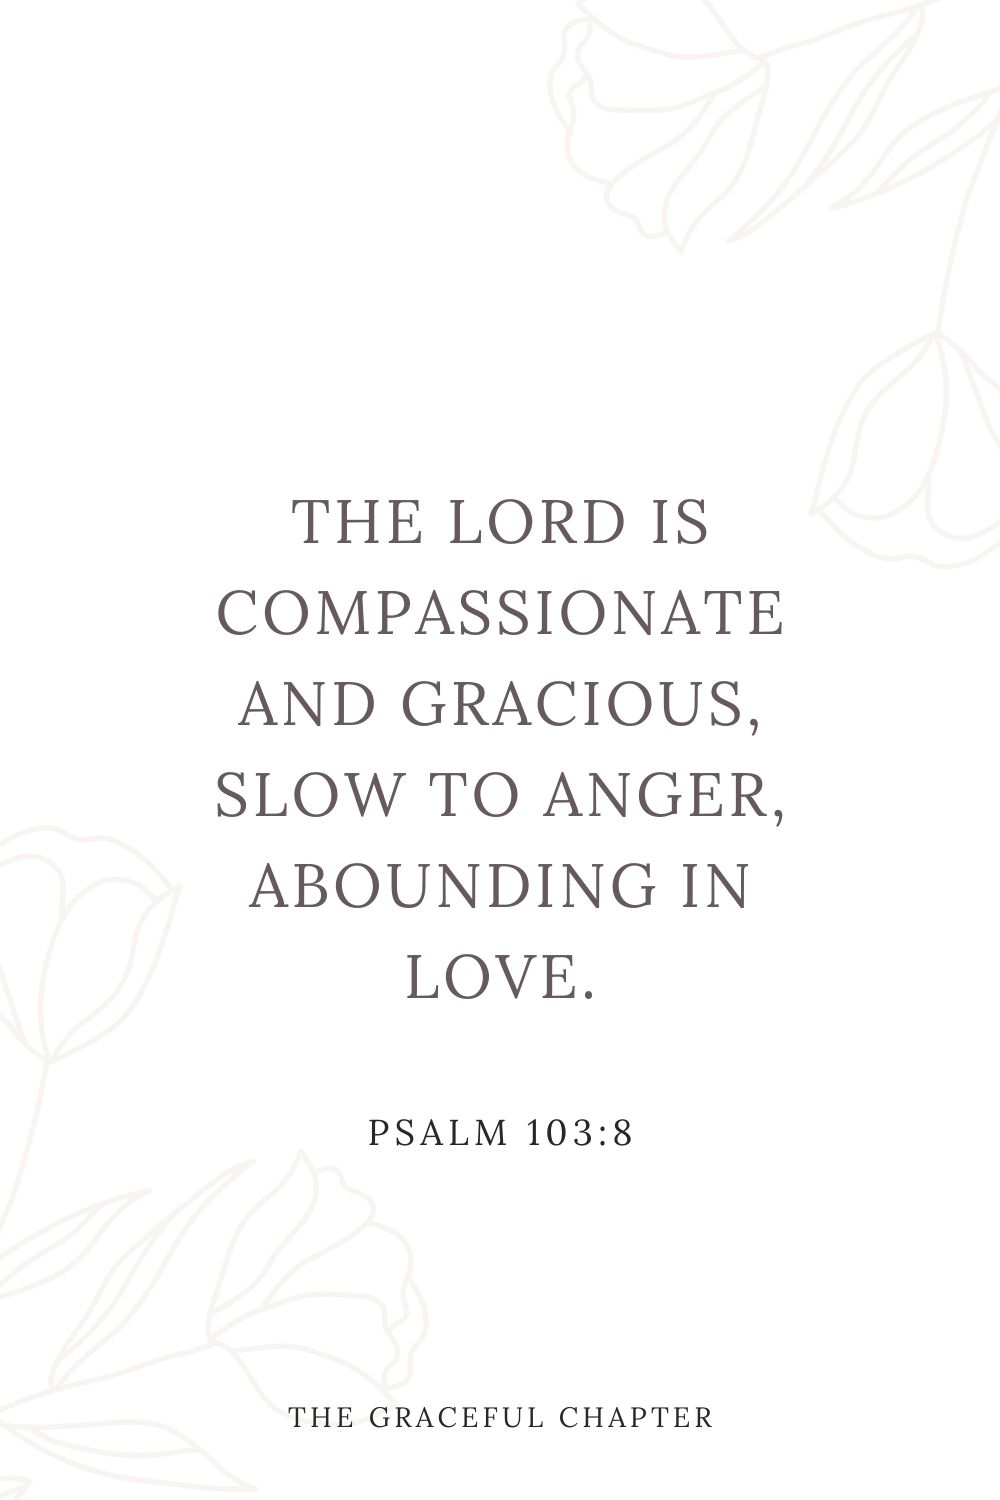 The Lord is compassionate and gracious, slow to anger, abounding in love. Psalm 103:8